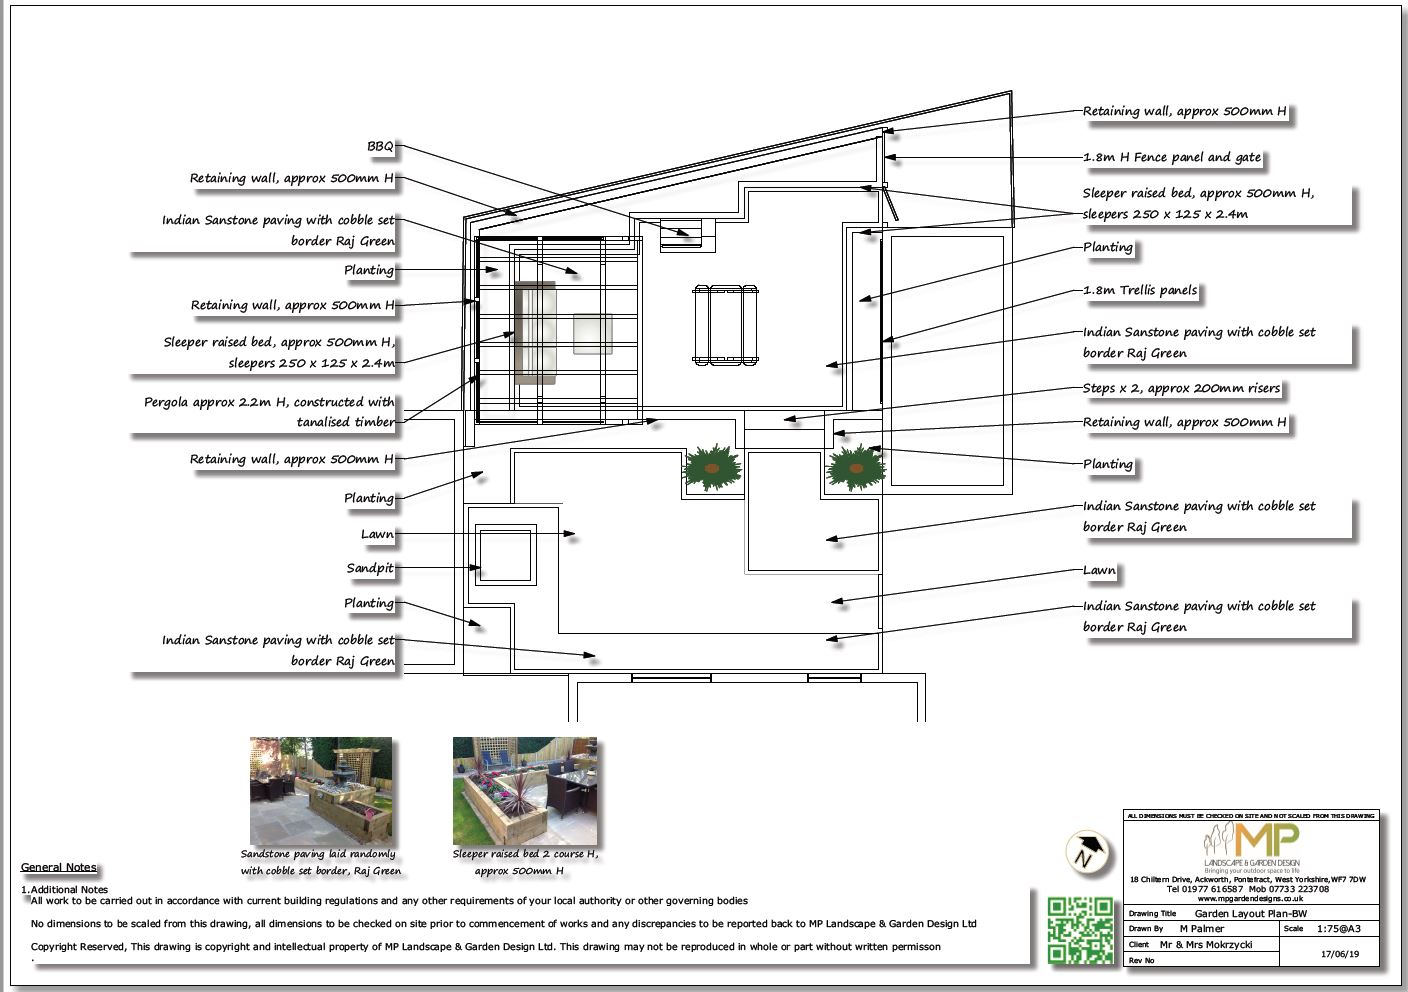 2, Black and white darden layout plan for a property in Normanton, West Yorkshire.